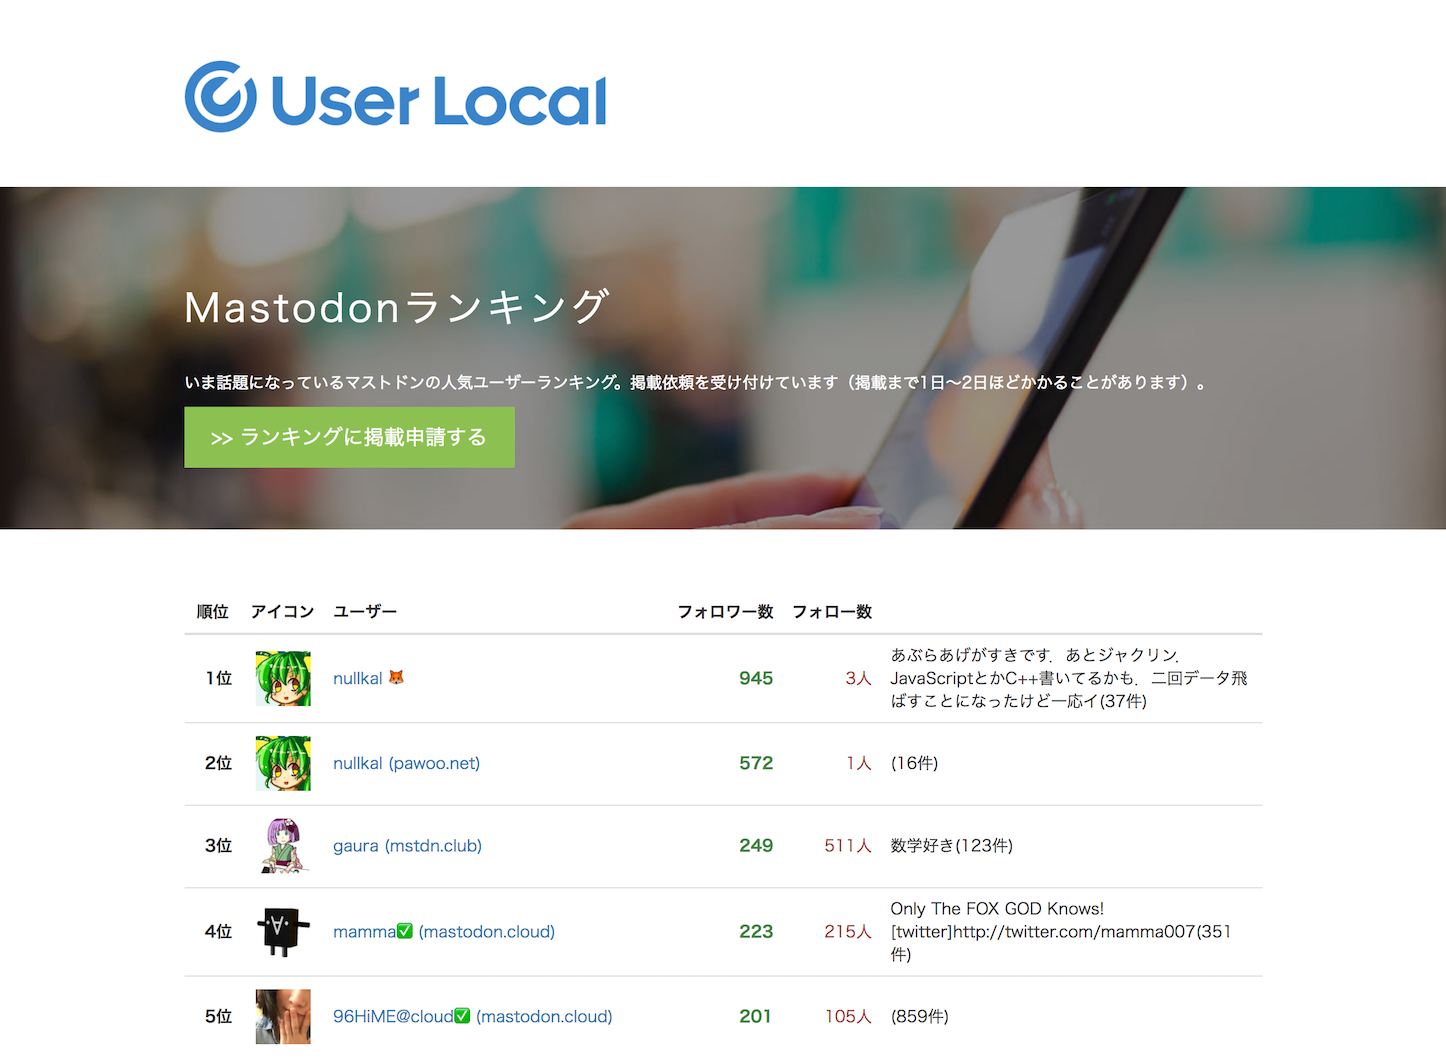 Mstdn userlocal ranking